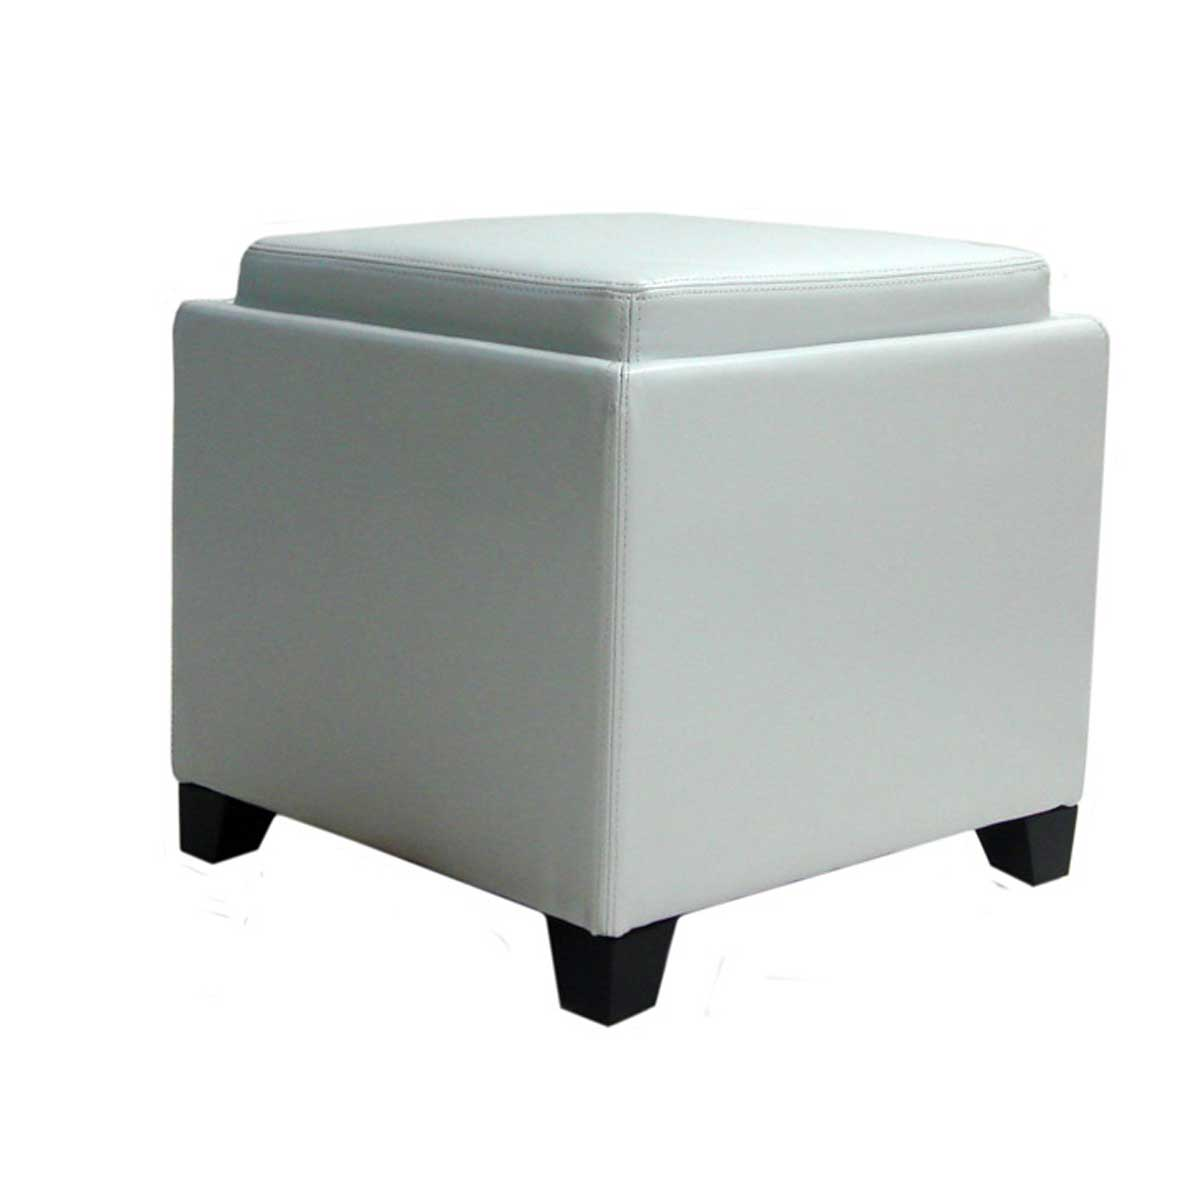 armen living contemporary storage ottoman with tray  white al  - armen living contemporary storage ottoman with tray  white